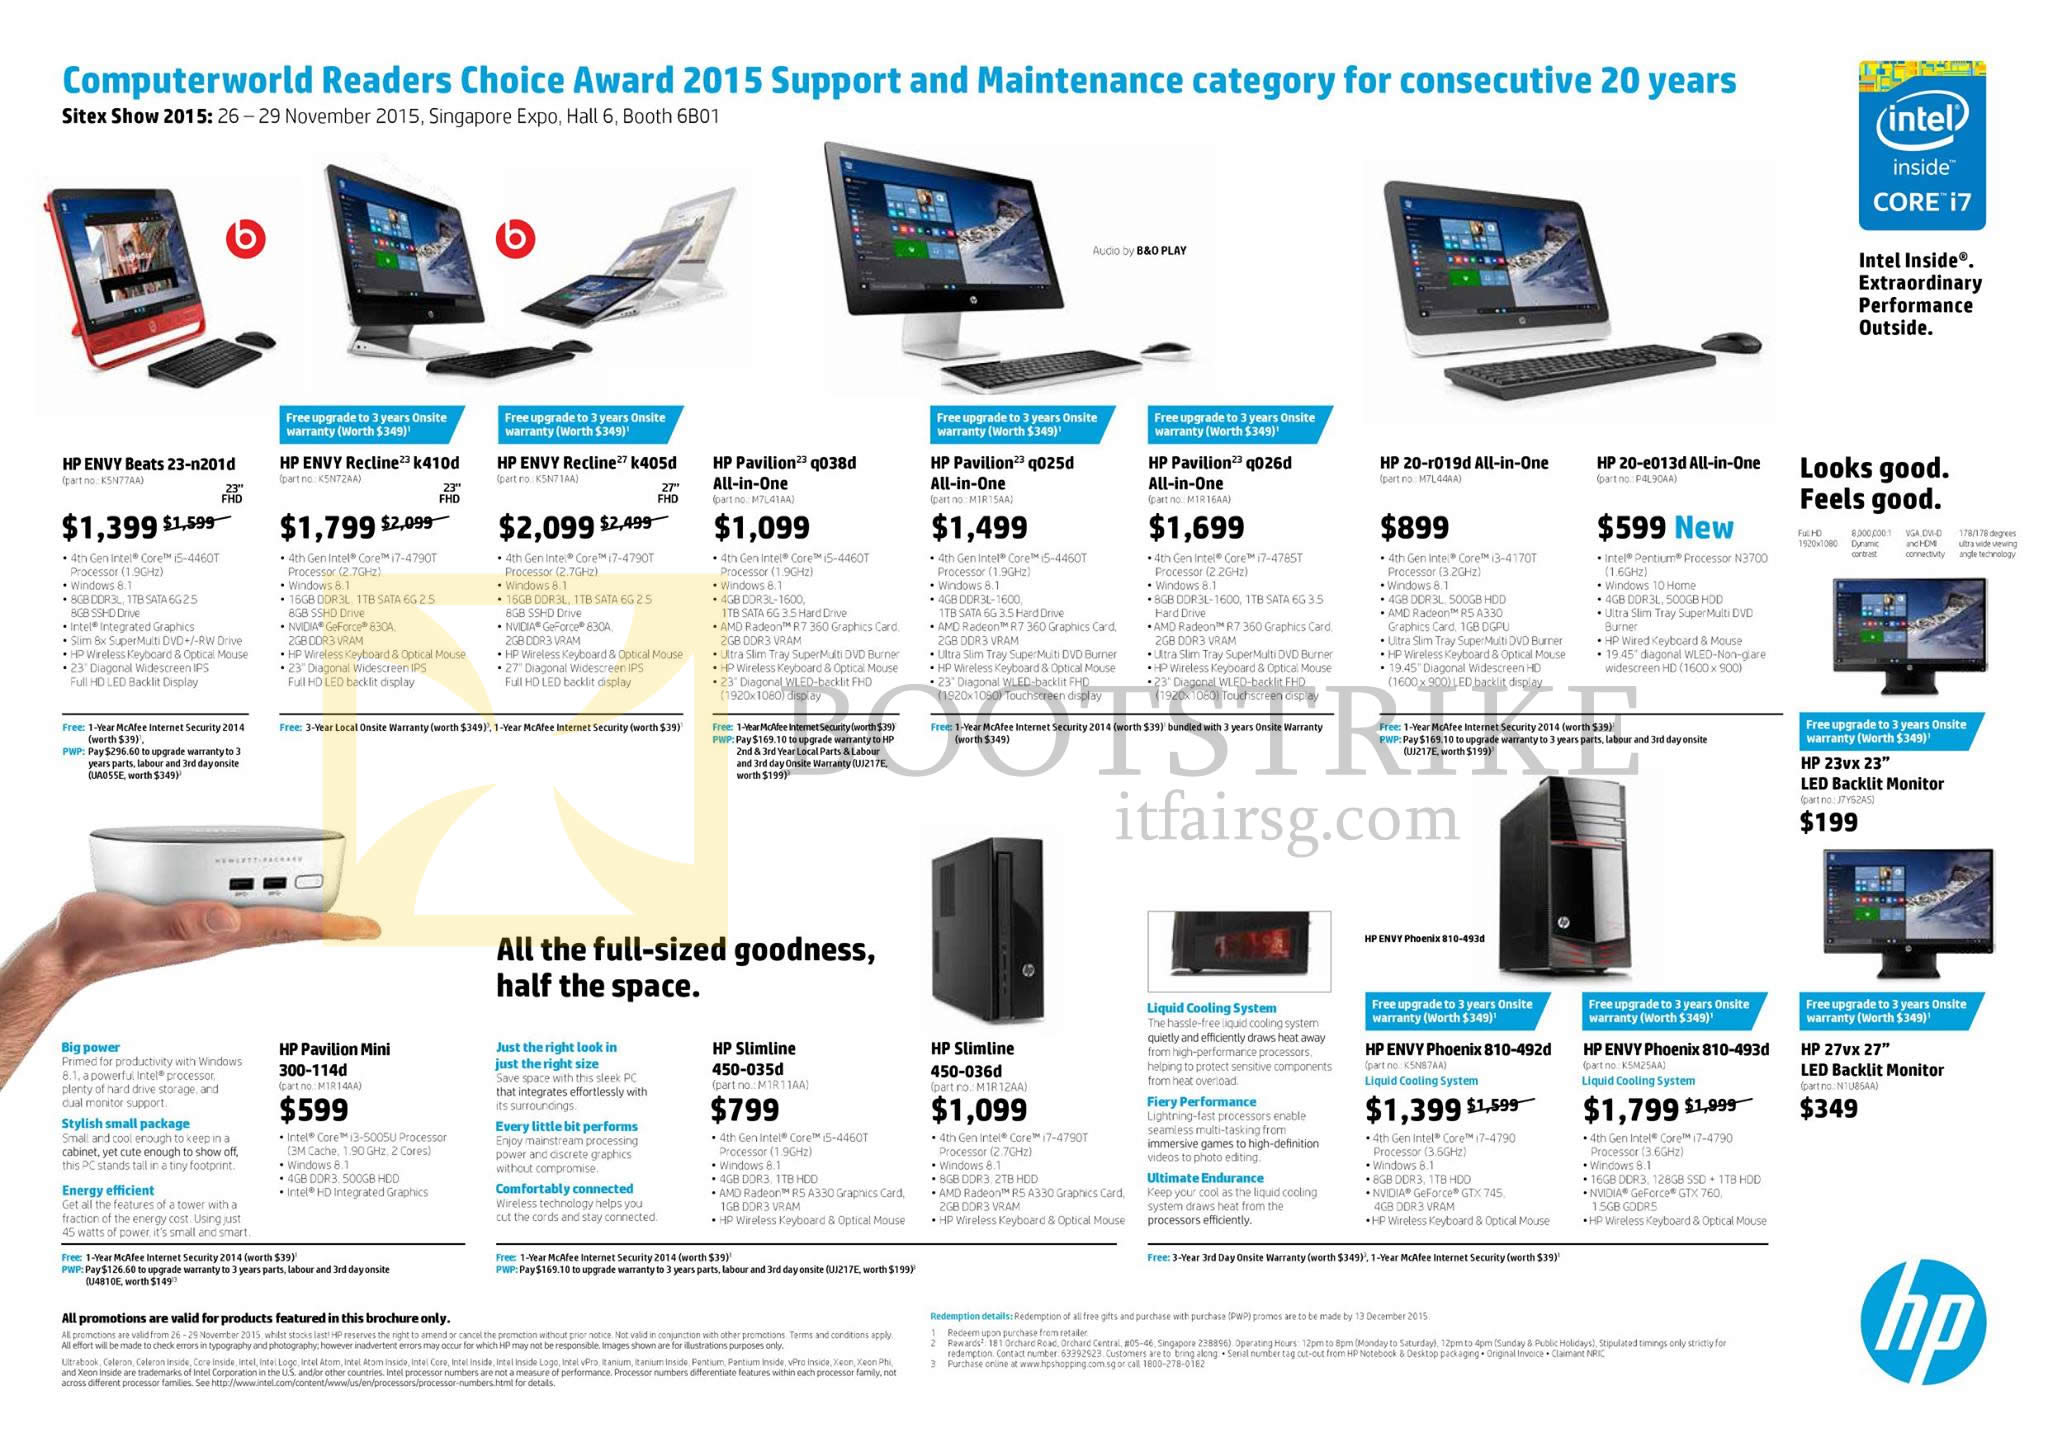 HP Desktop PCs AIO Monitors 20 r019d 22 2100d TouchSmart